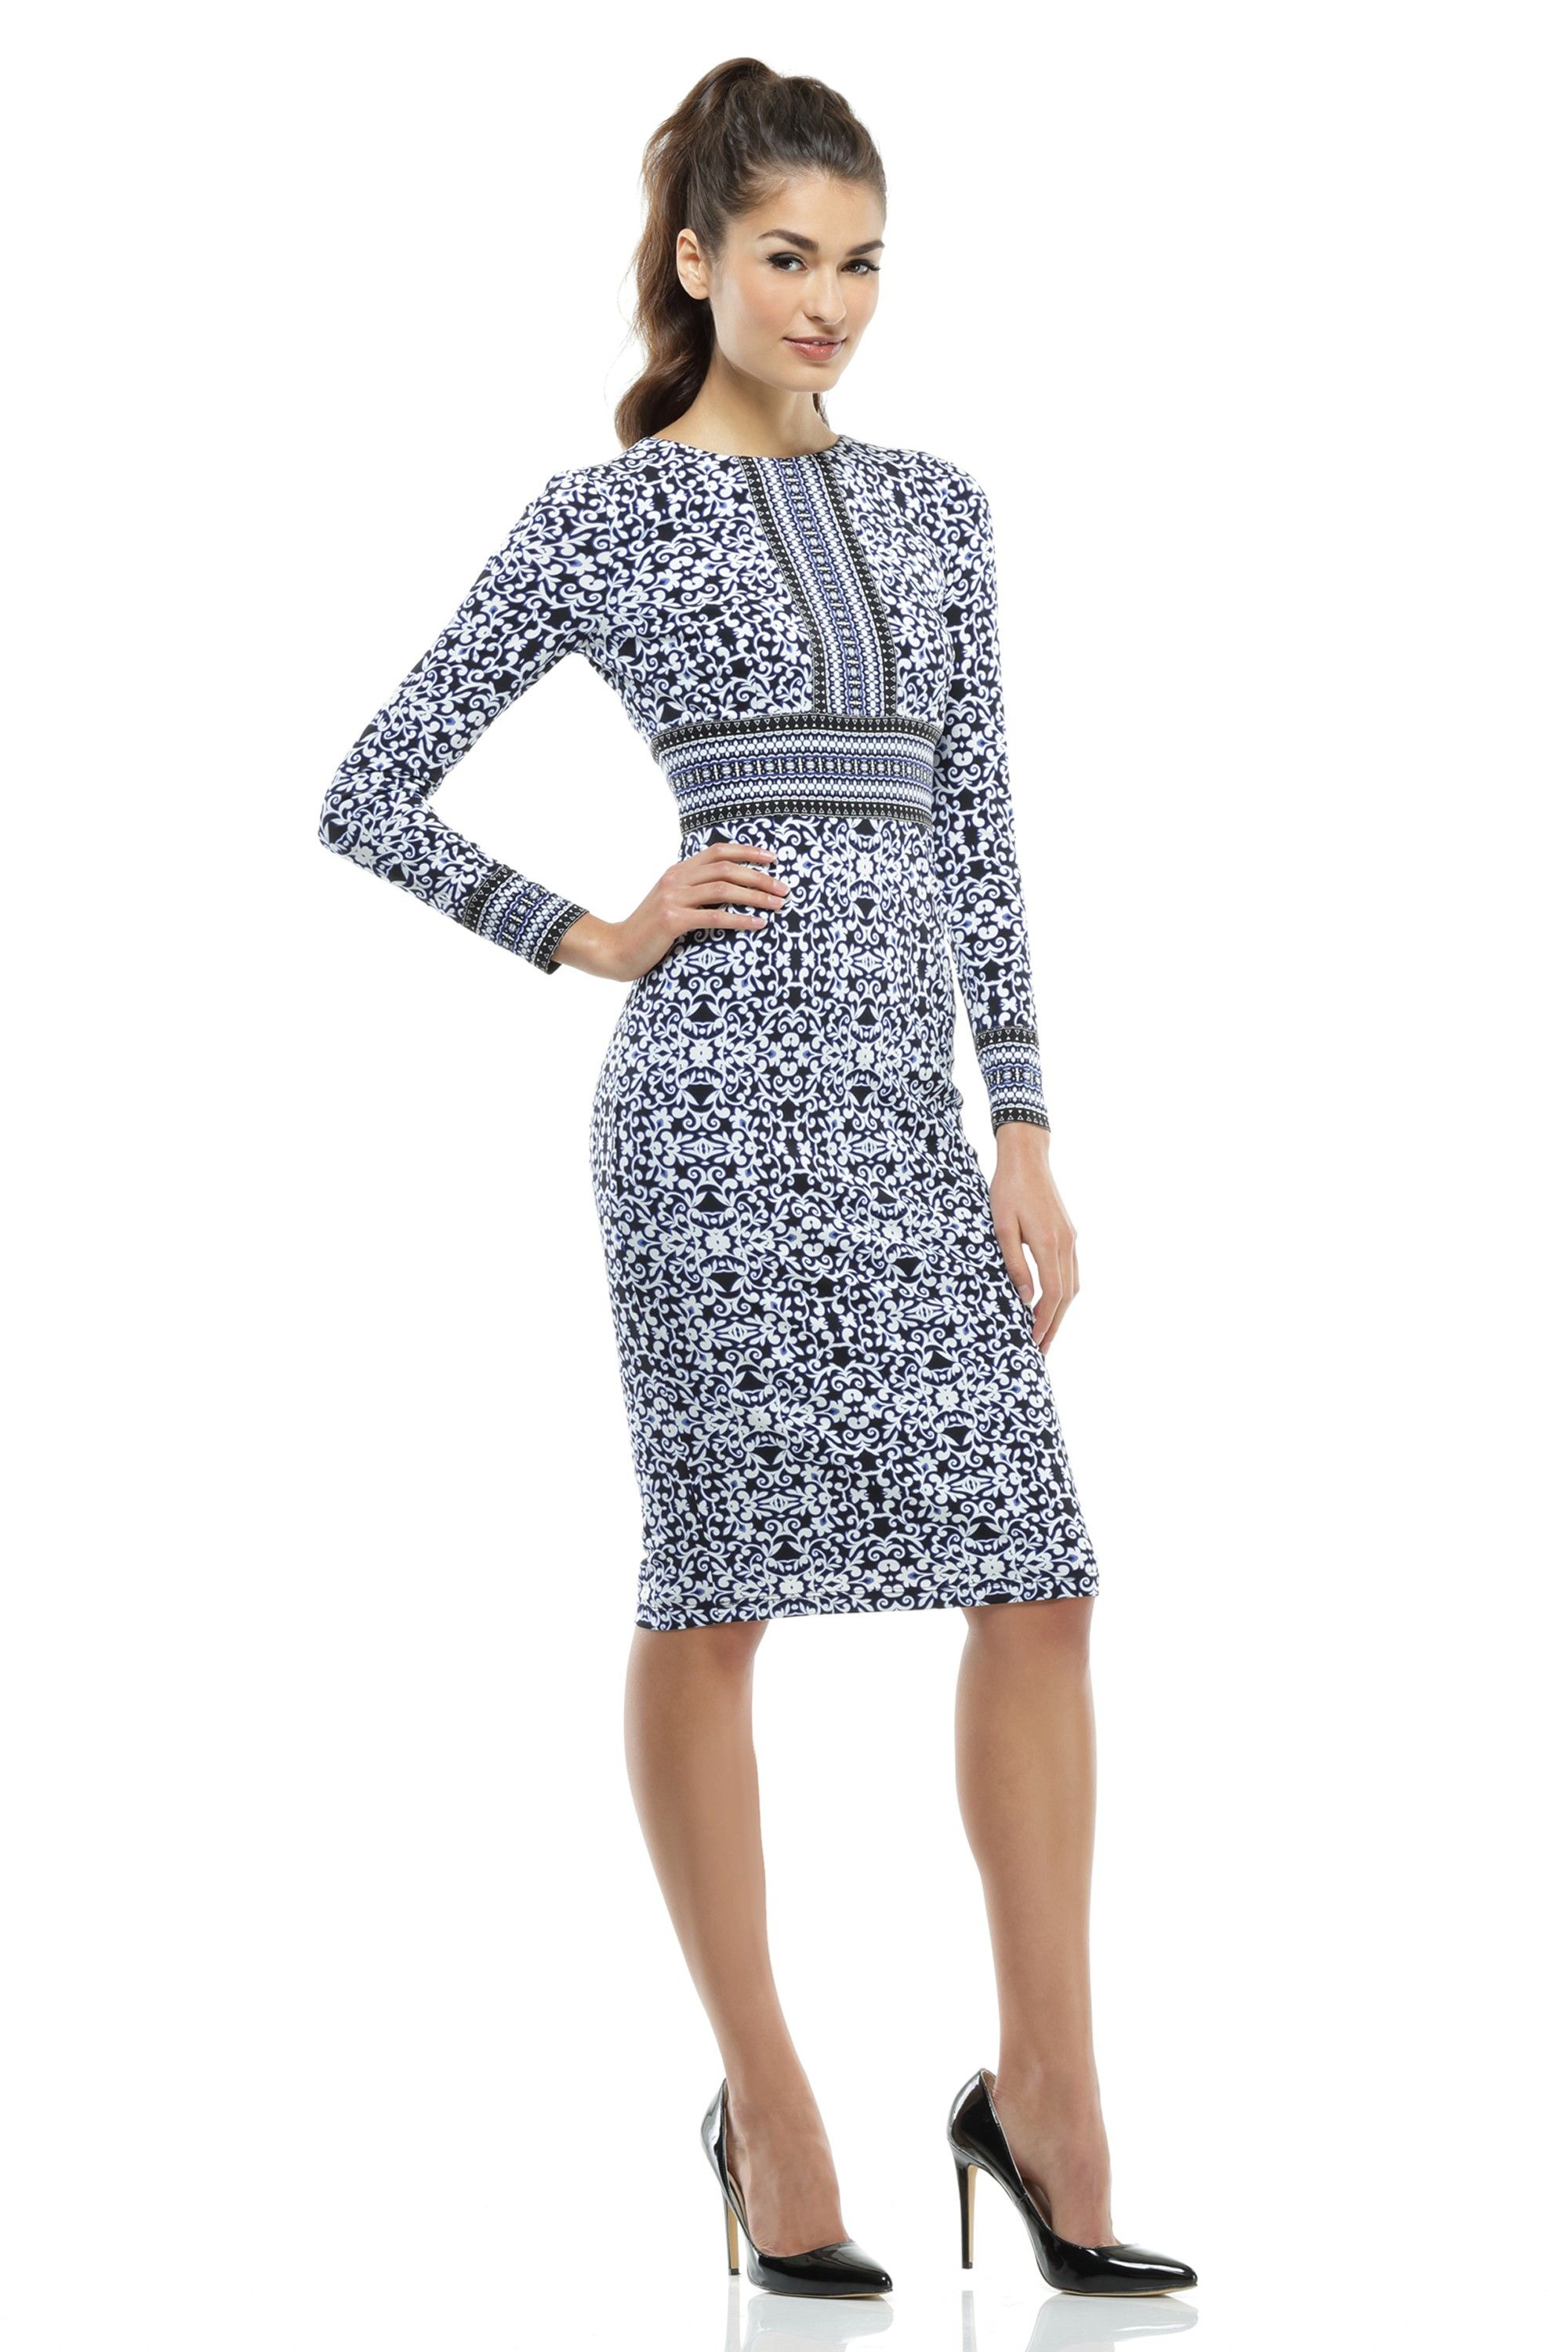 The dress and beyond - Long Sleeve Maggy London Casual Midi Dress For Work And Beyond